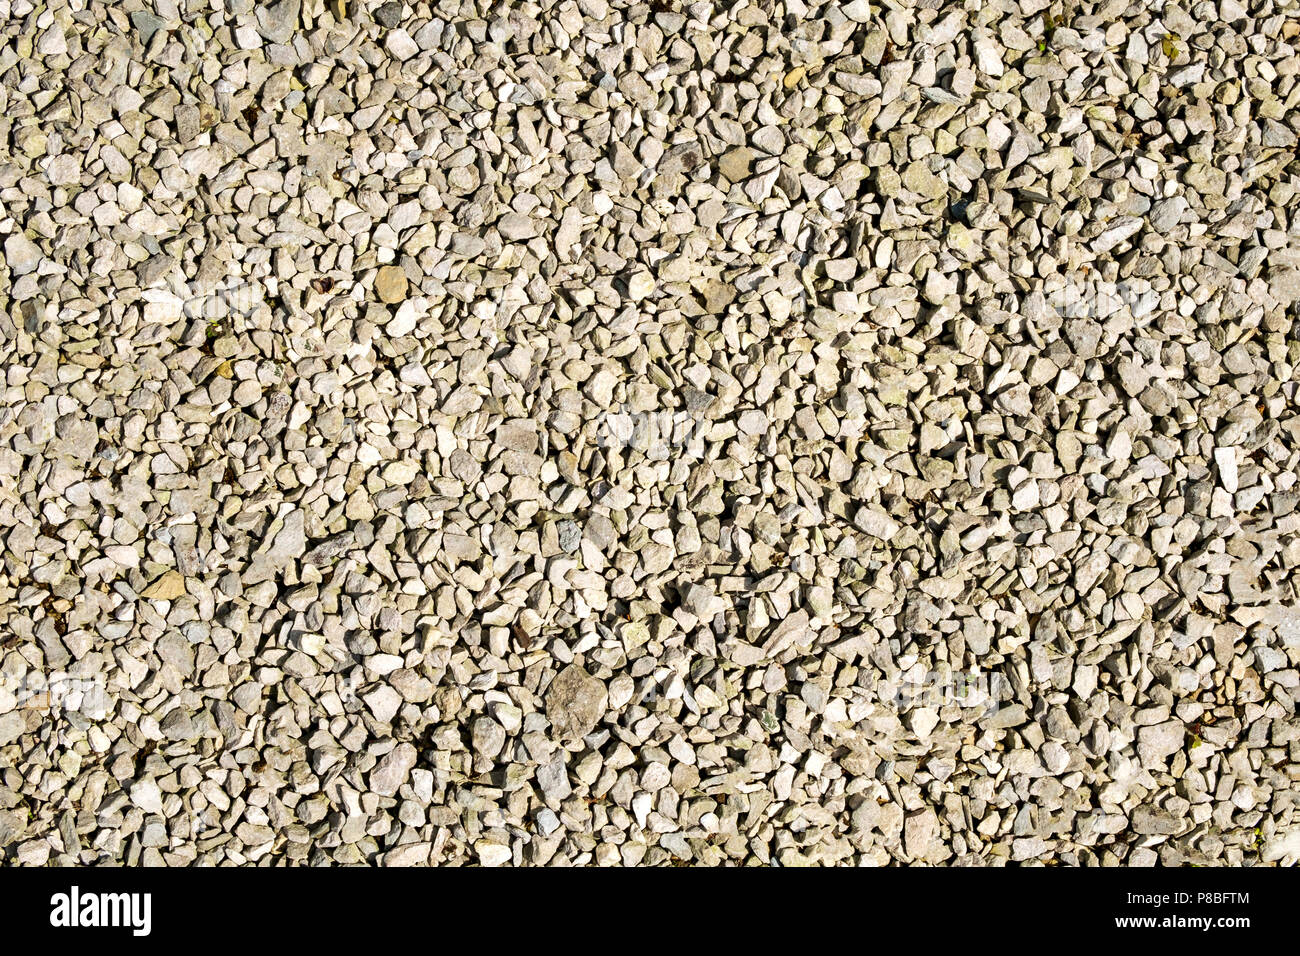 Limestone chippings hard landscaping garden surface - Stock Image